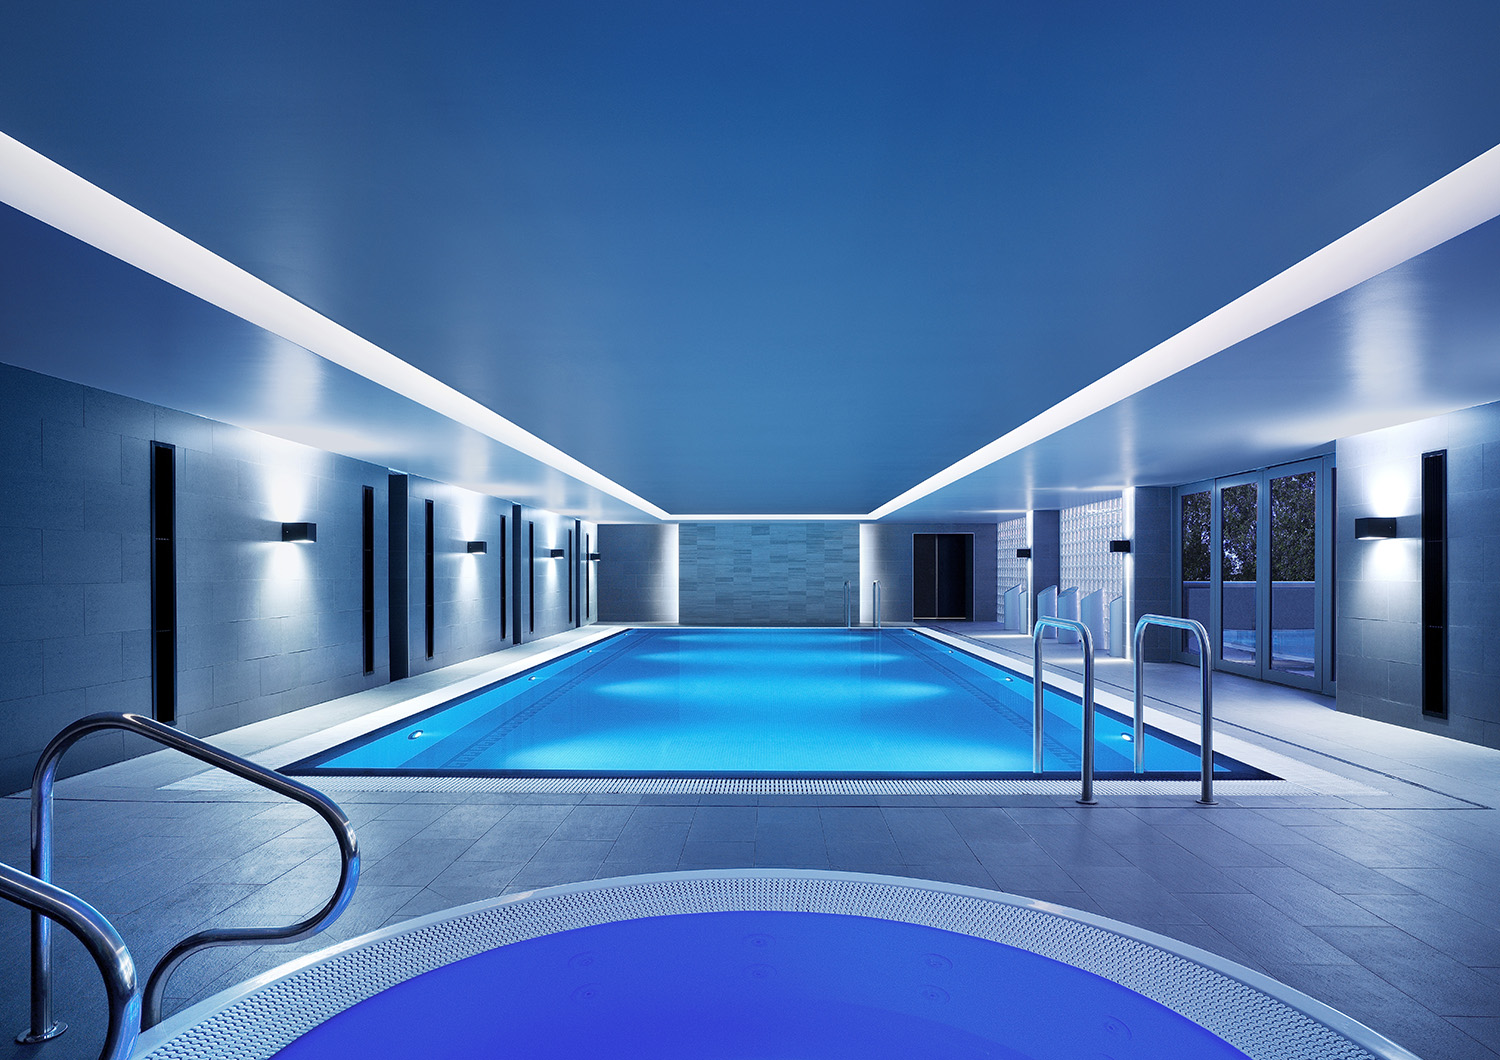 The hotel's Health Club features an indoor swimming pool.